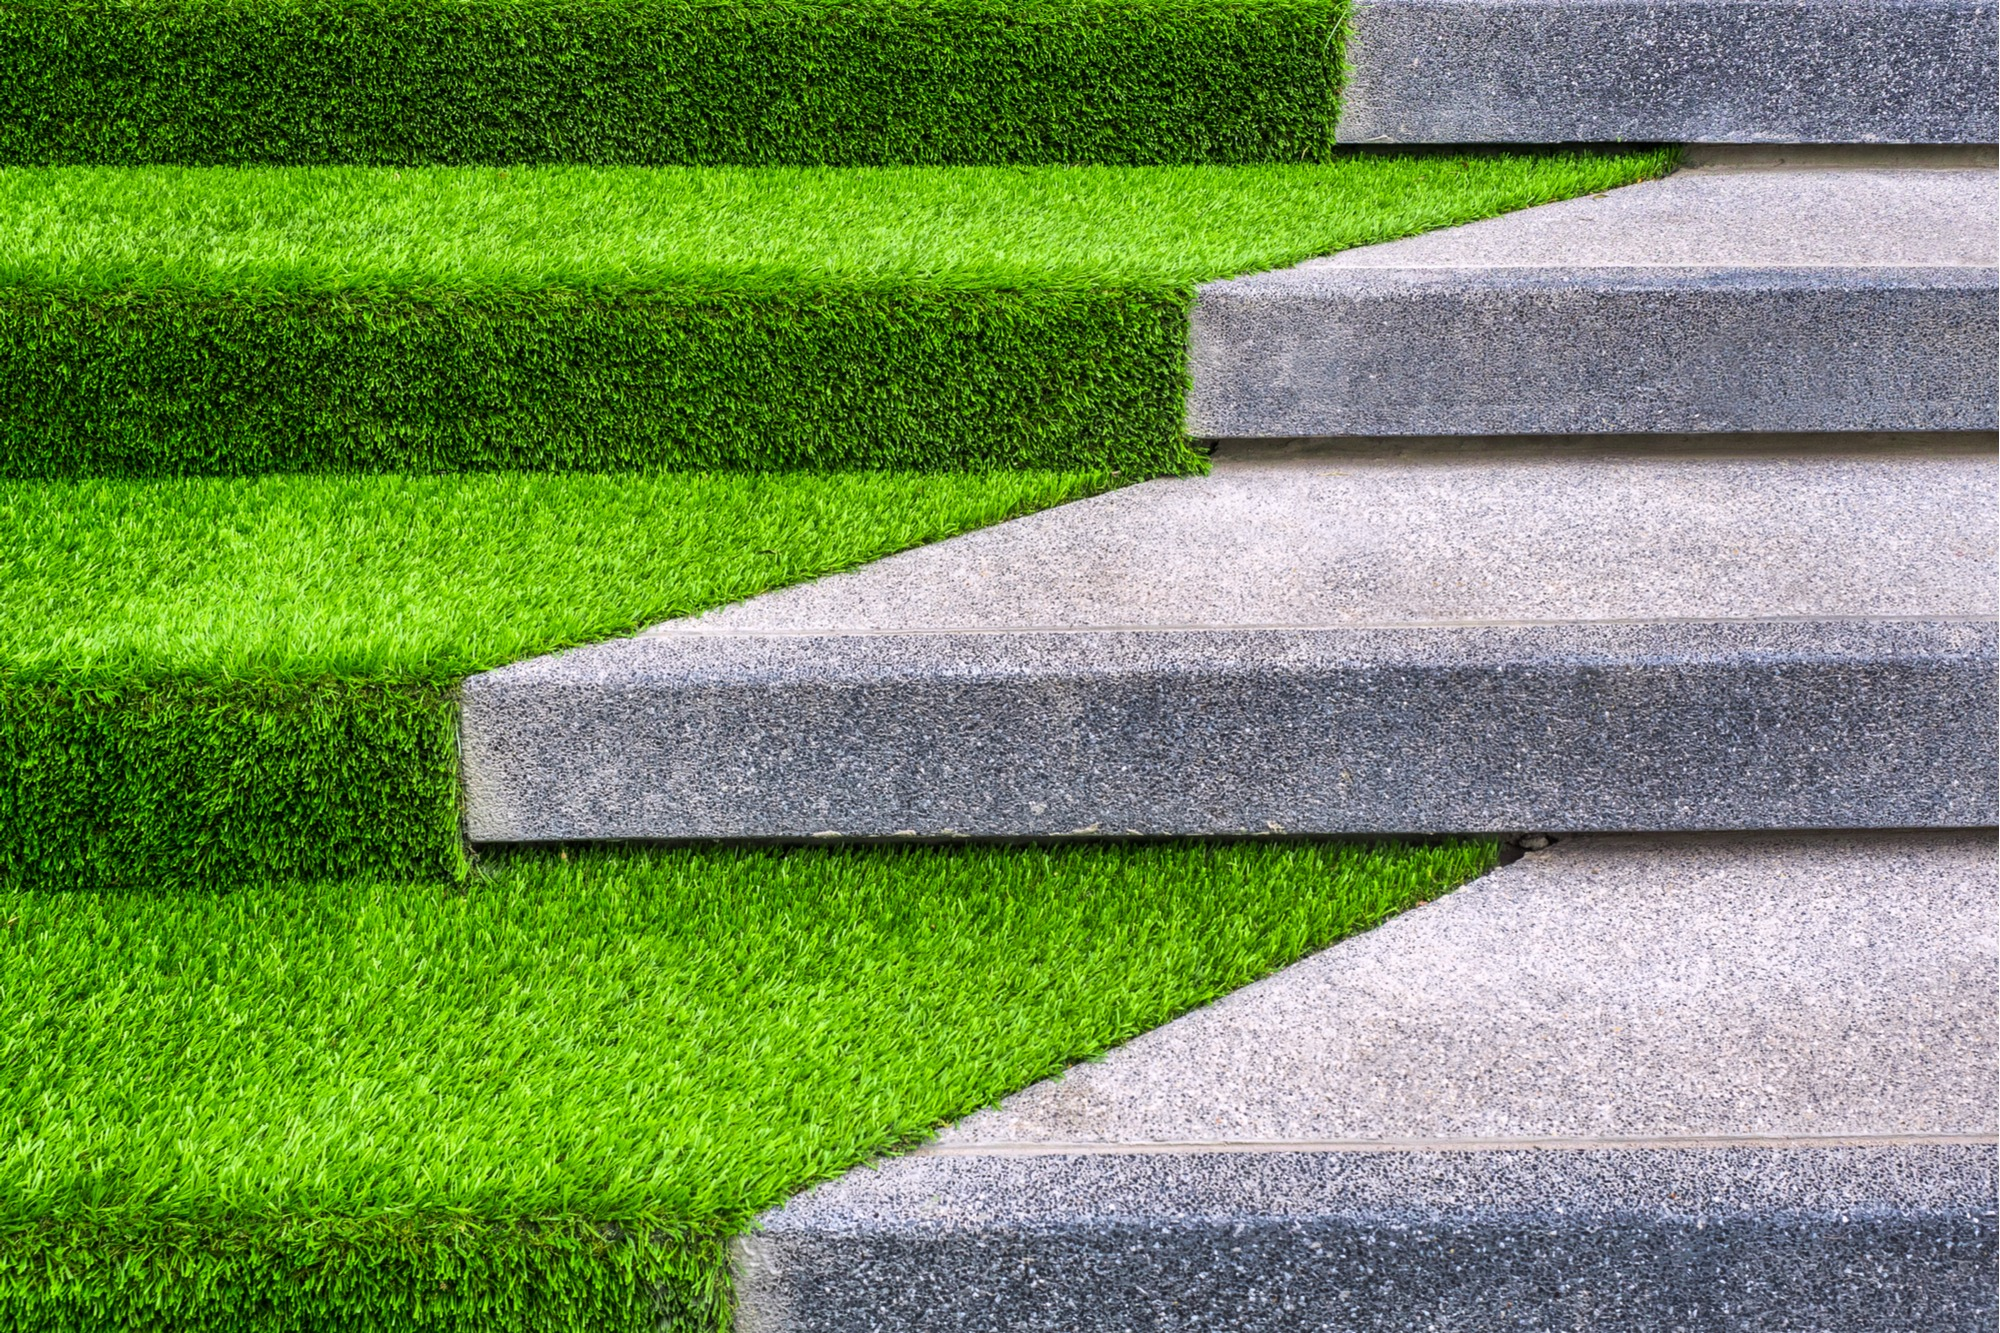 Can I Install Artificial Grass on Top of Concrete or Asphalt